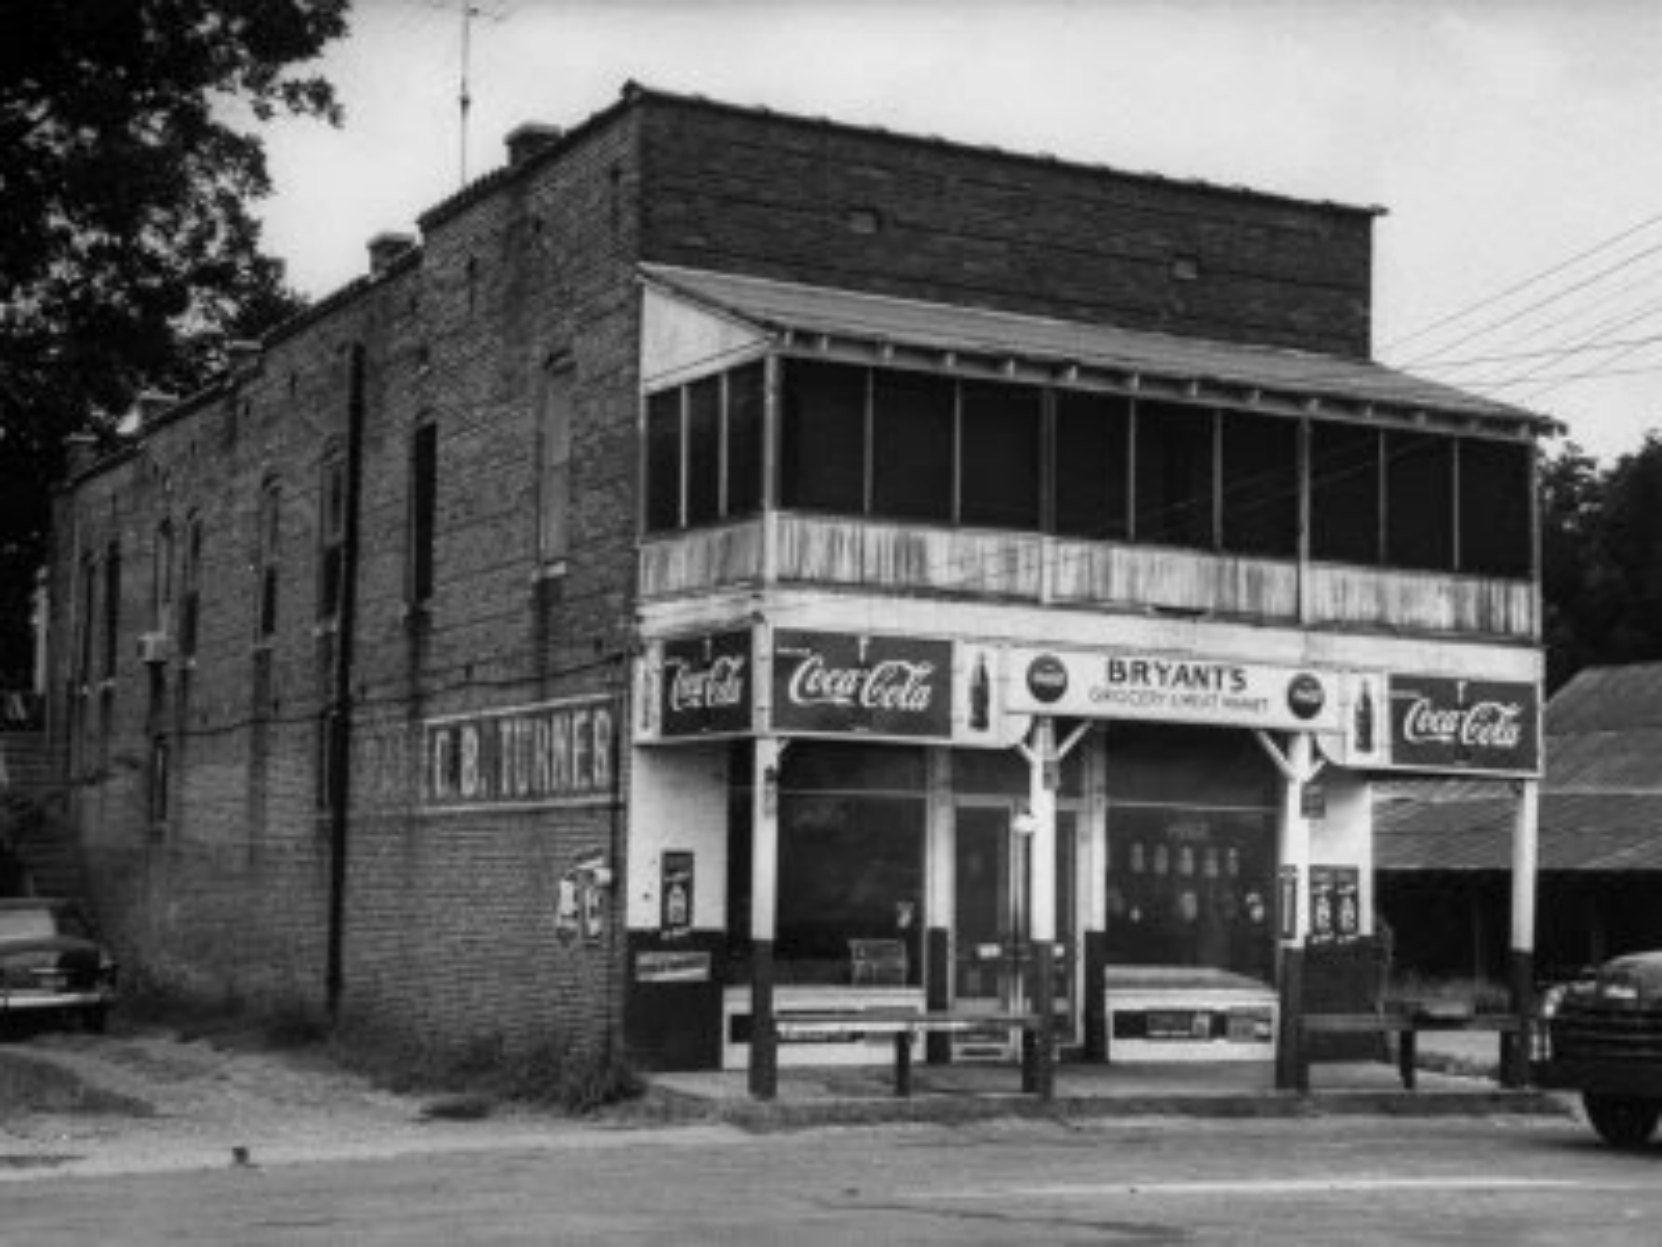 Bryant's Grocery in the 1950's